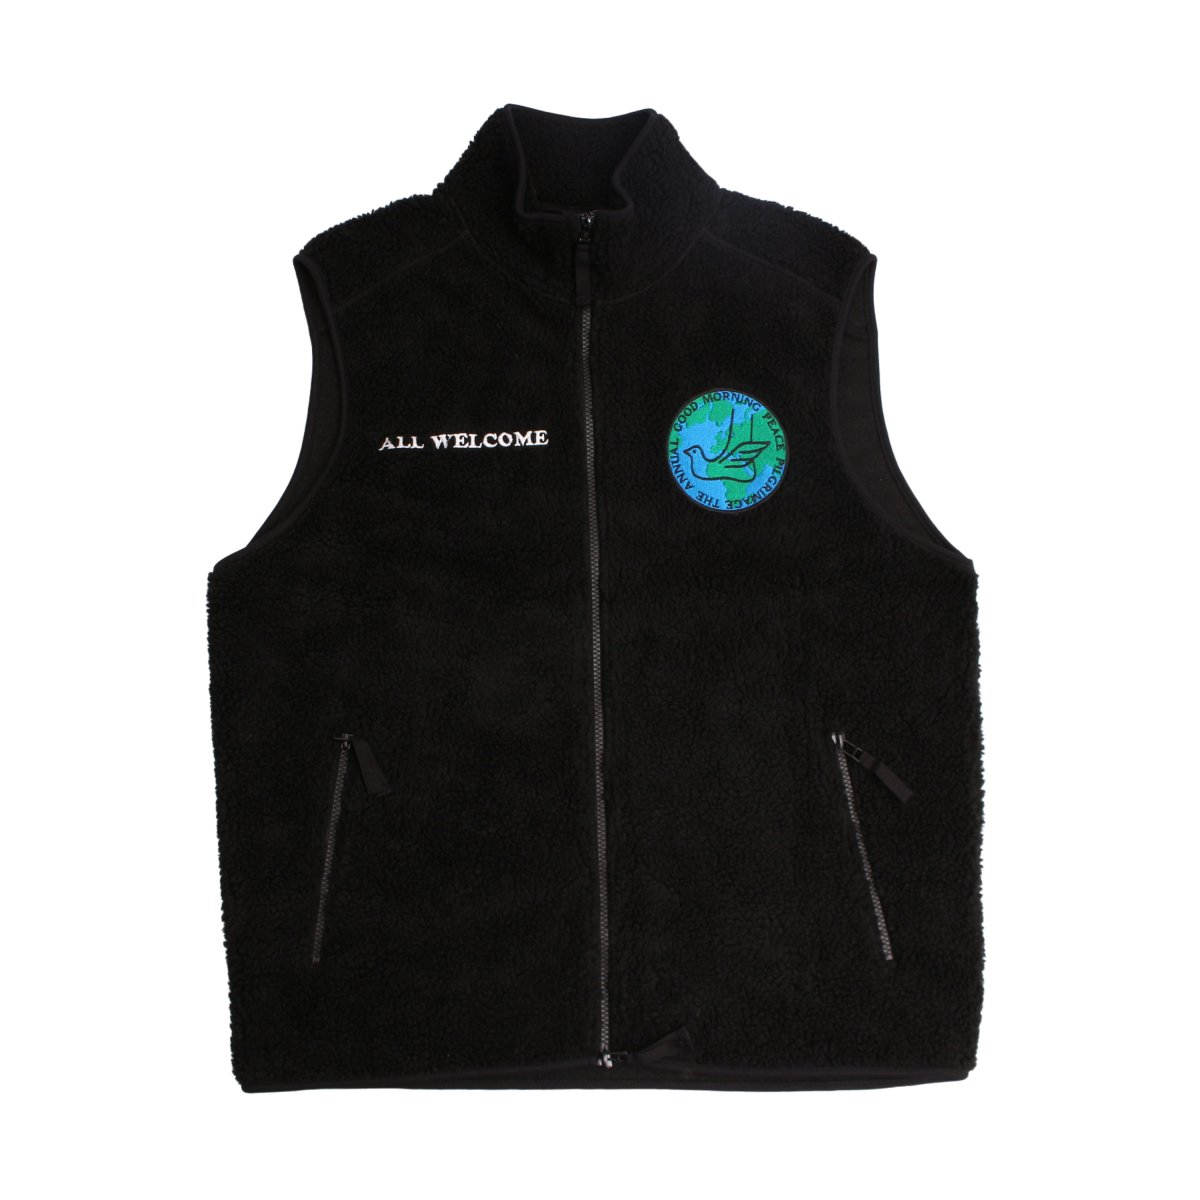 ALL WELCOME ZIP THRU VEST